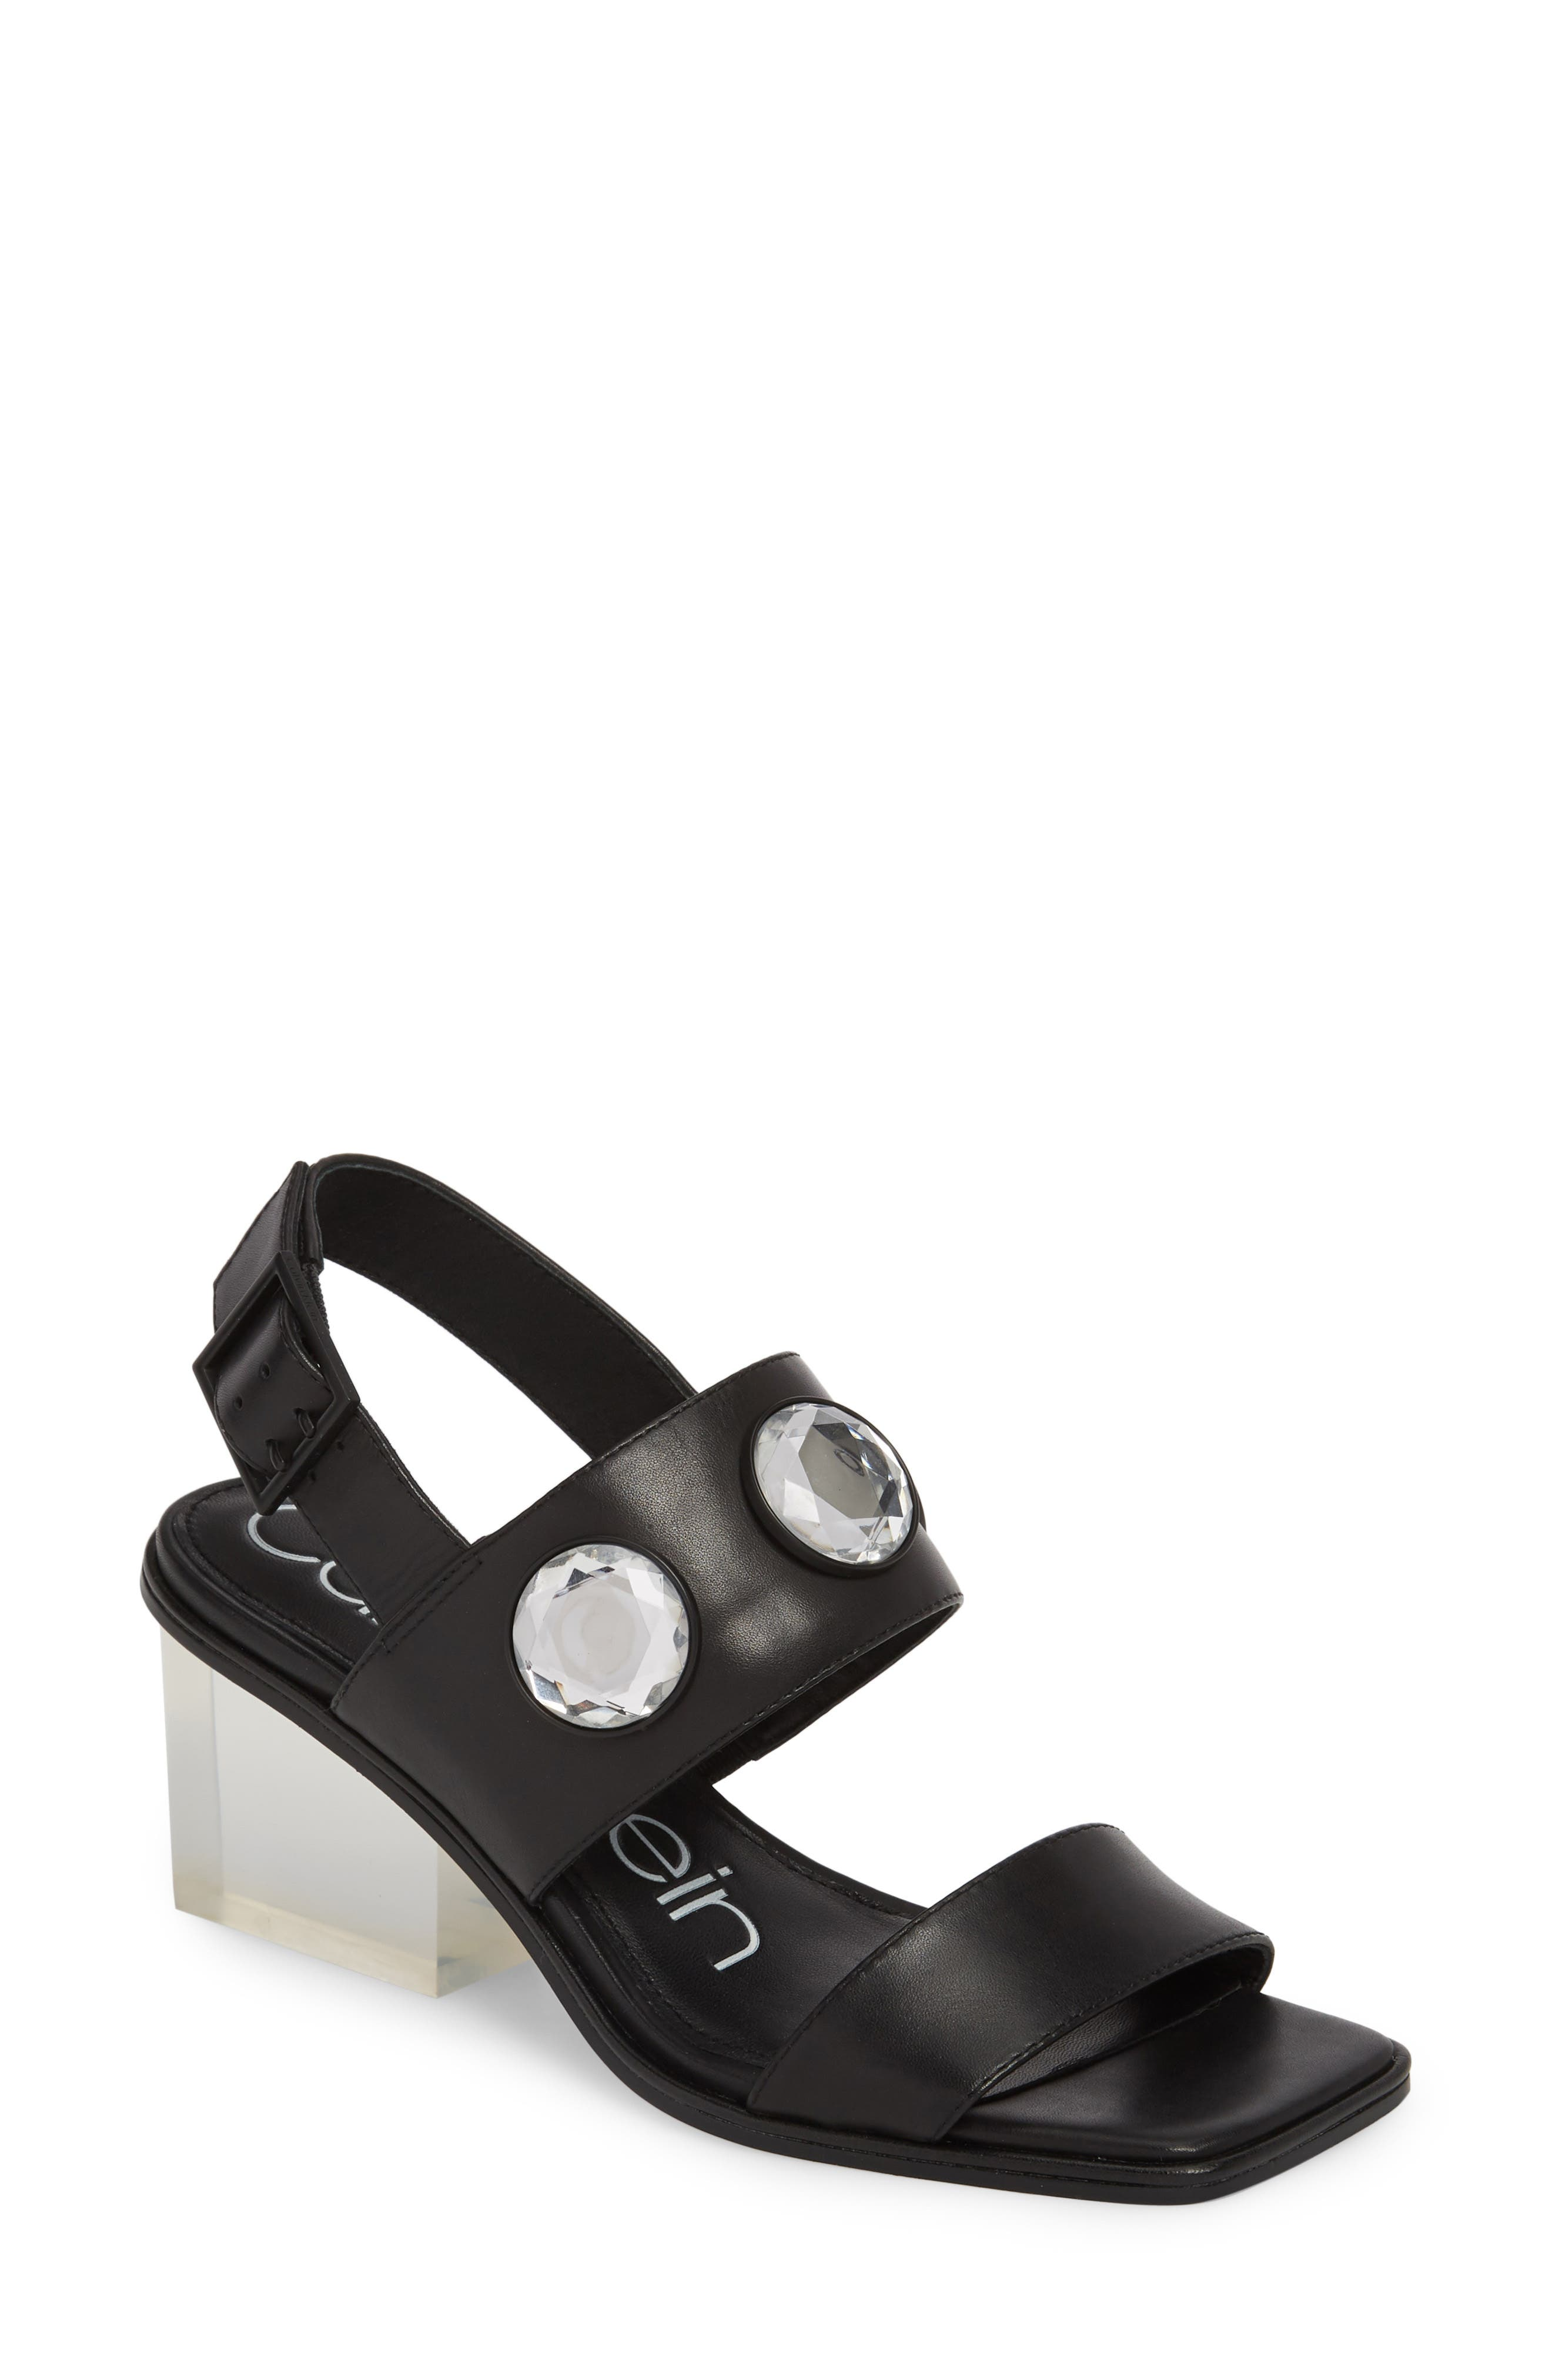 Kadyn Slingback Sandal,                         Main,                         color, Black Leather